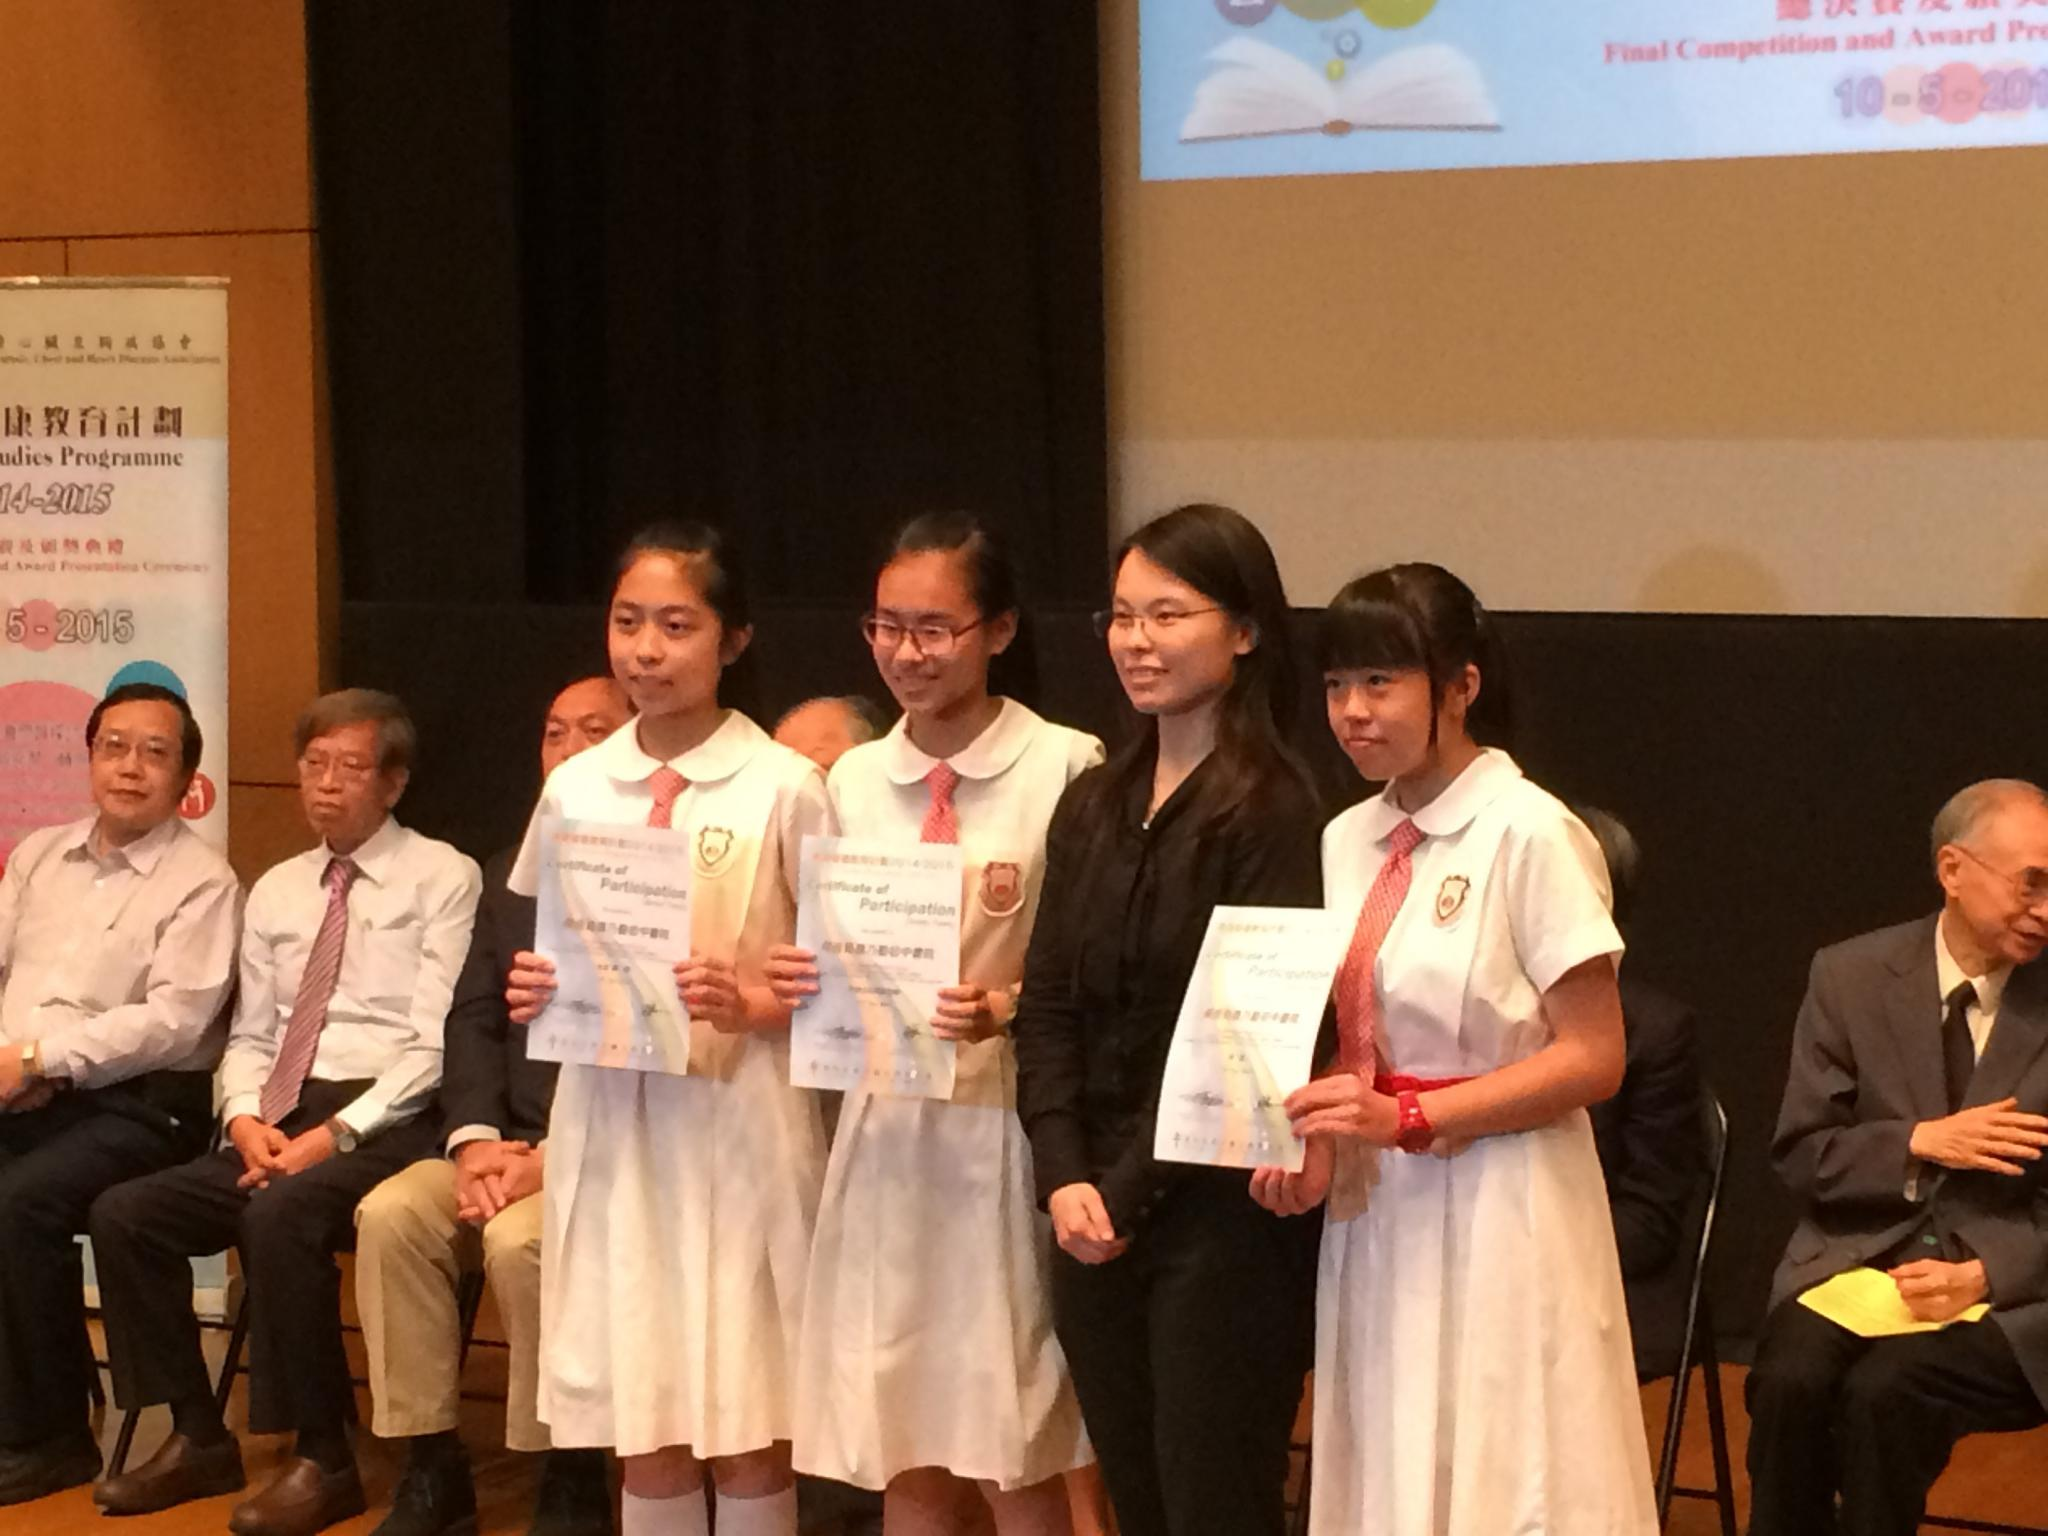 Students represent all teams from our school to receive the Certificate of Participation from one of the semi-final adjudicators.